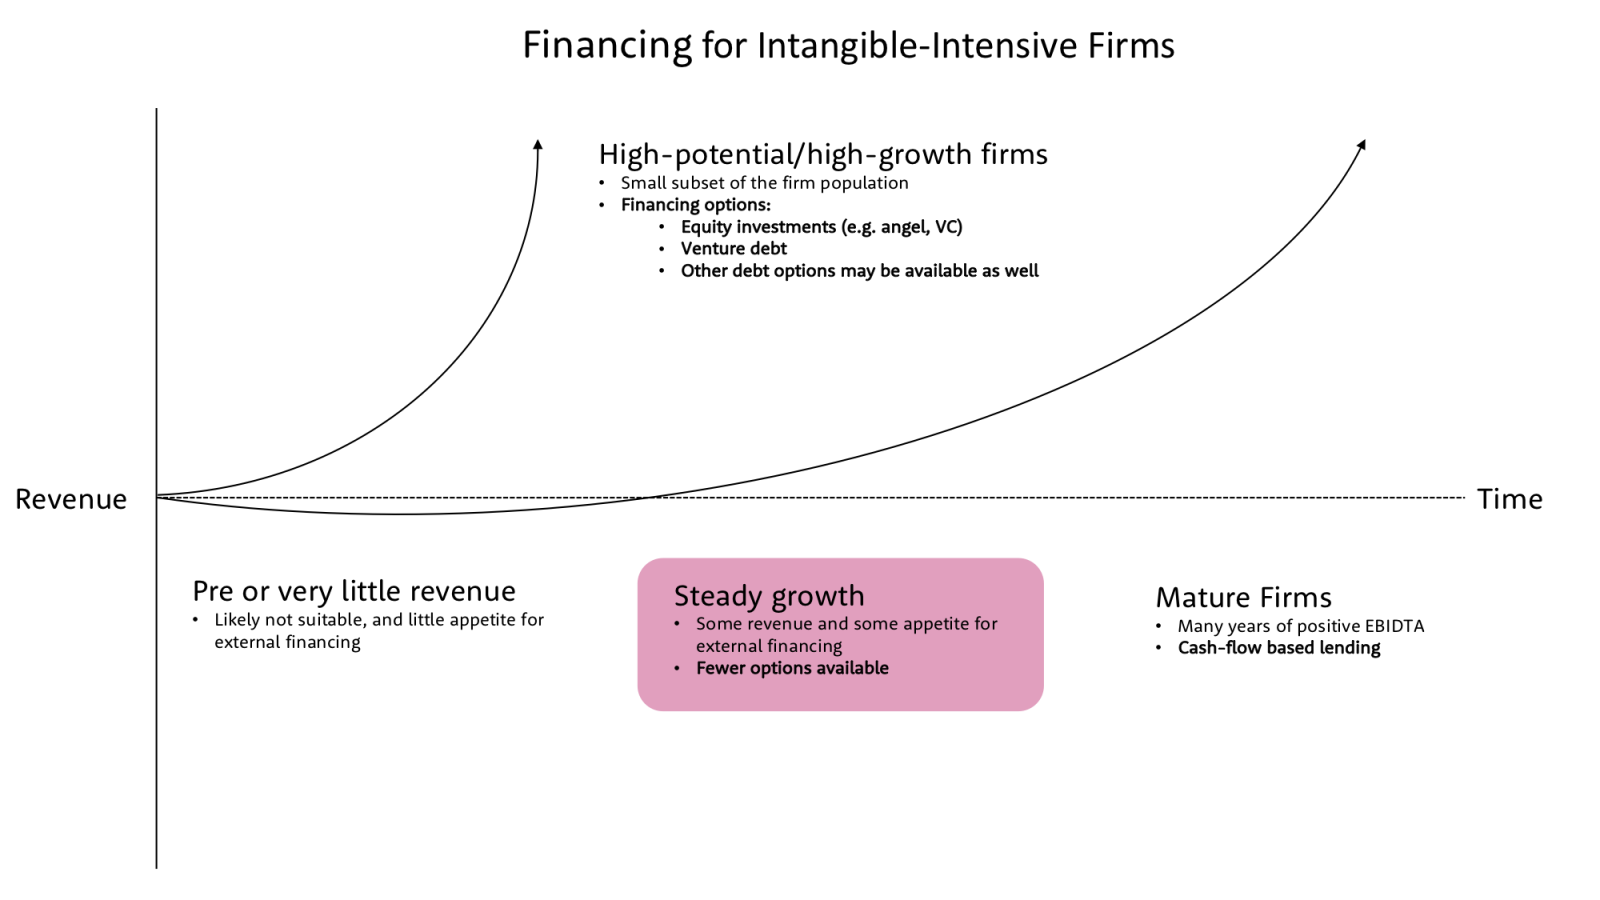 Visualization of financing for intangible-intensive firm life cycle; with revenue on y-axis and time on x-axis.